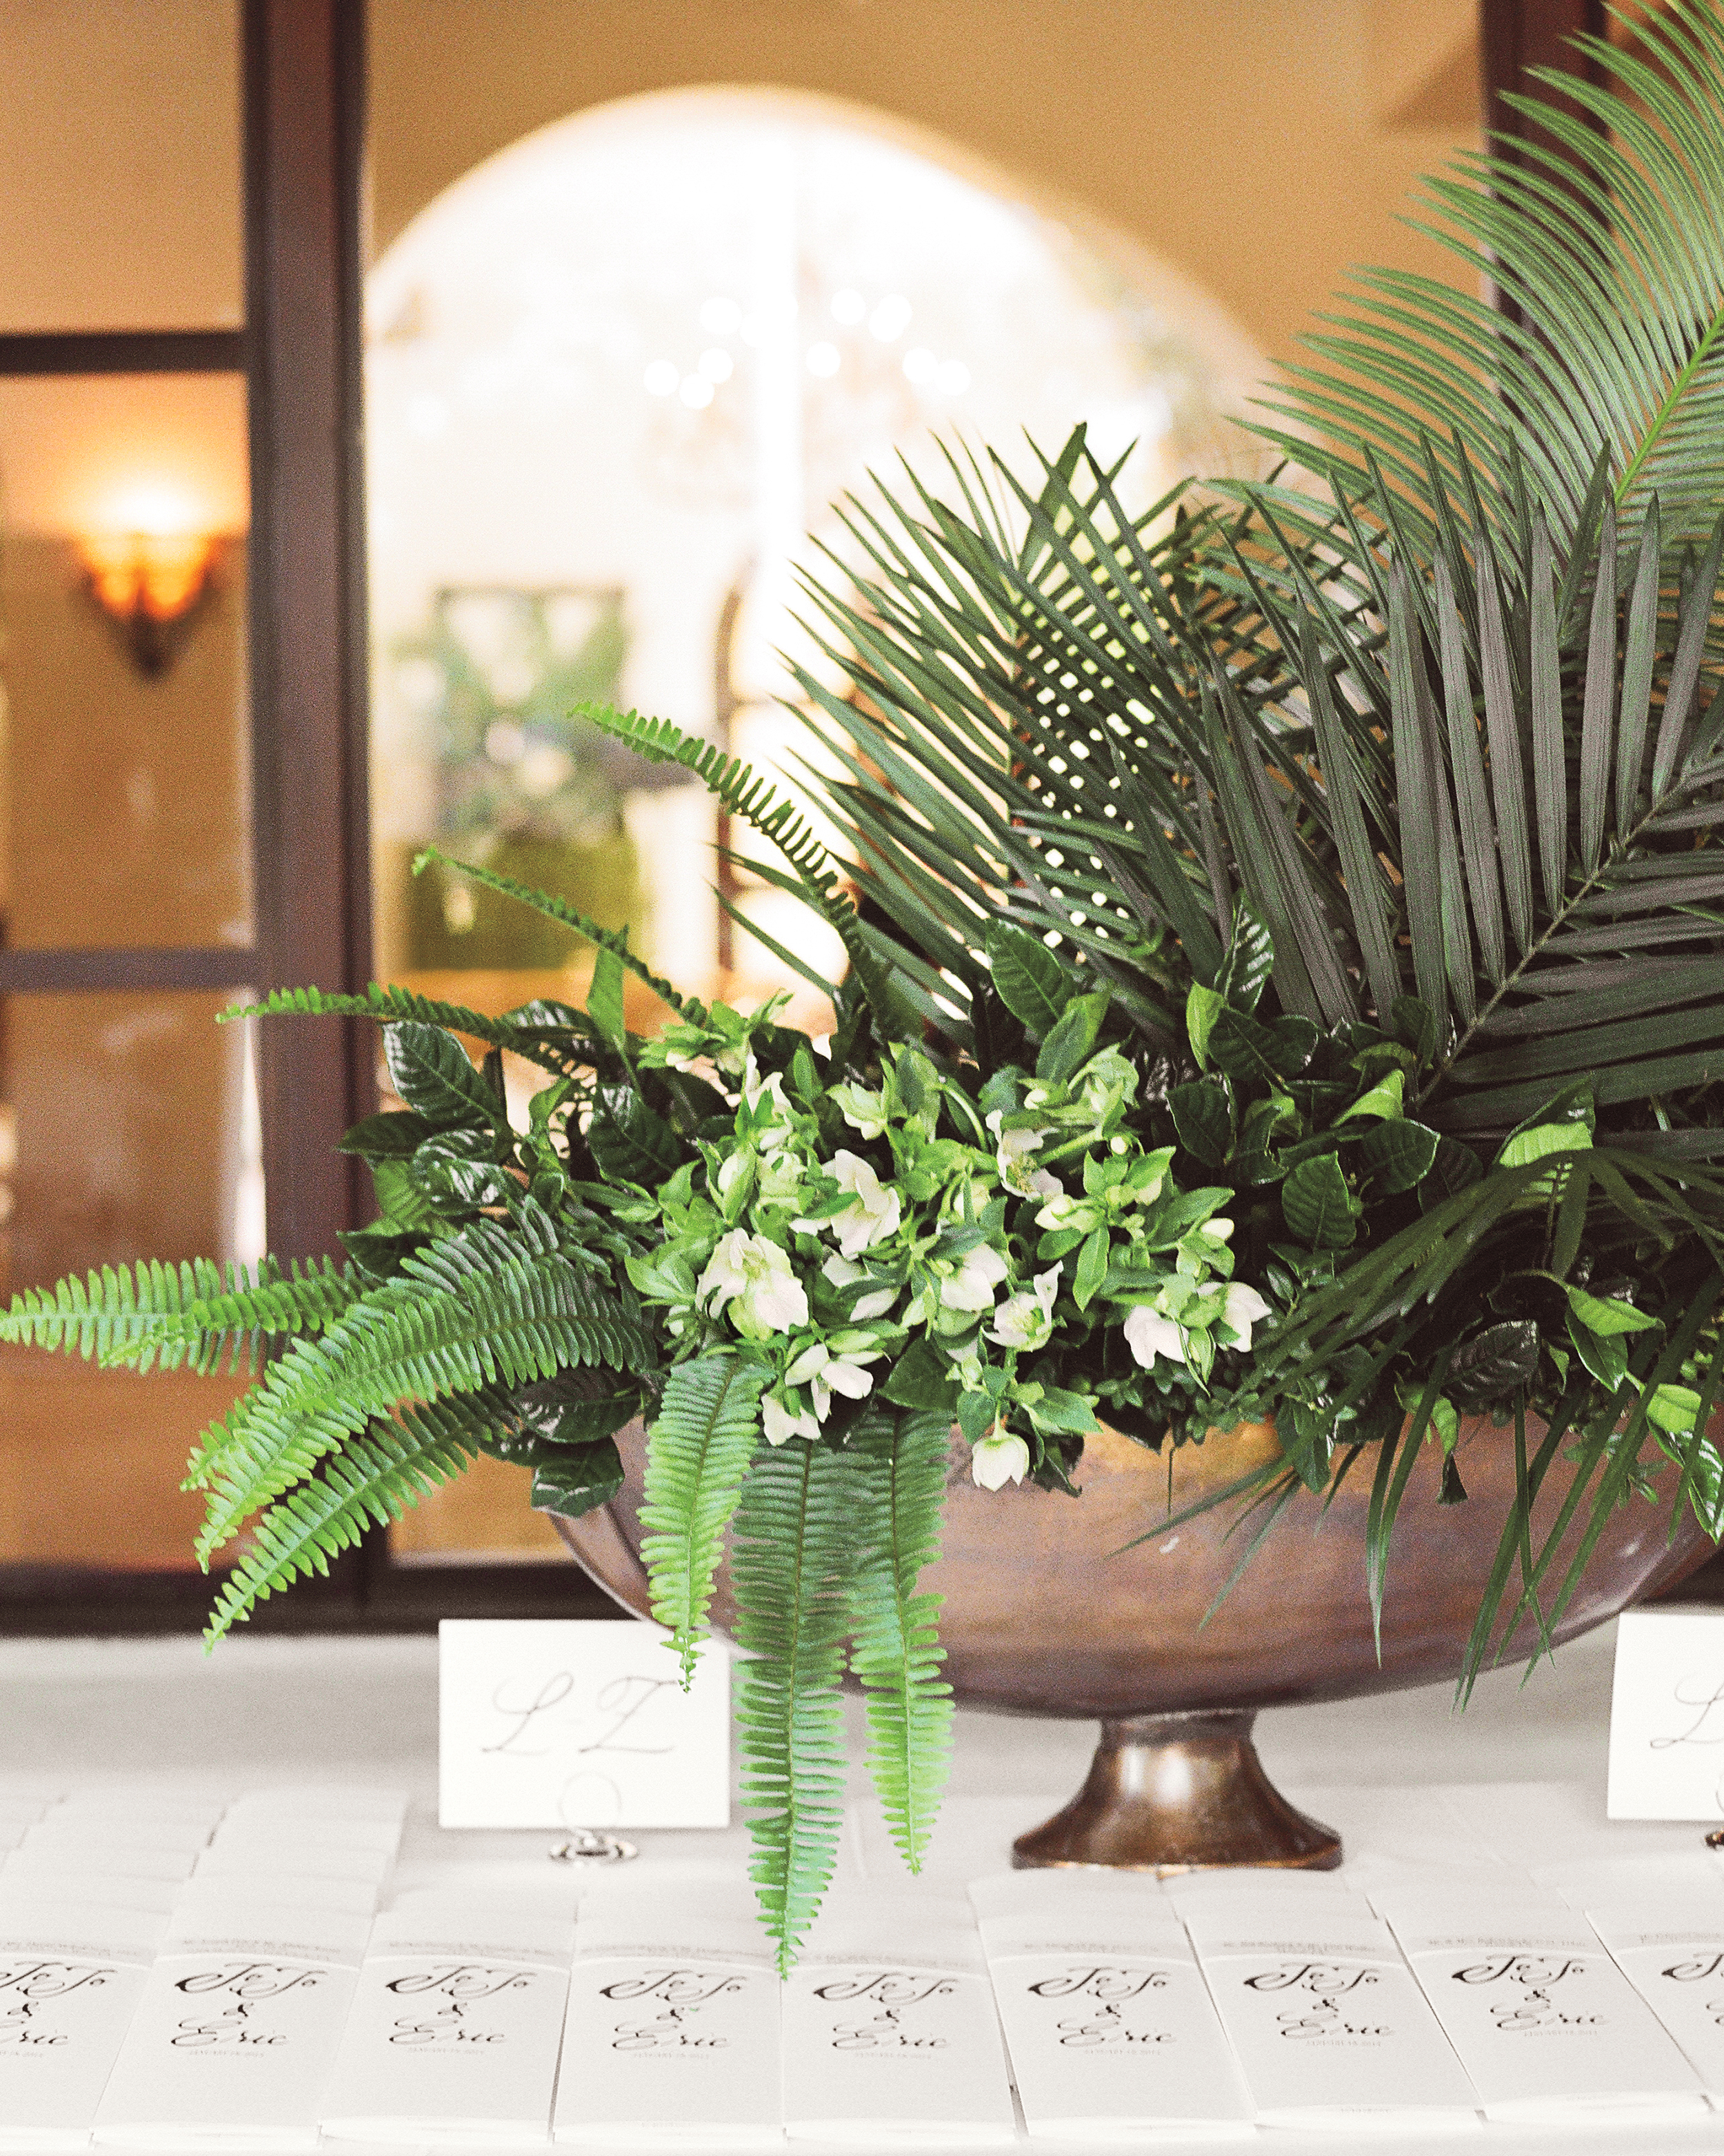 rw-jojo-eric-centerpiece-fern-placecards-040-elizabeth-messina-ds111226.jpg